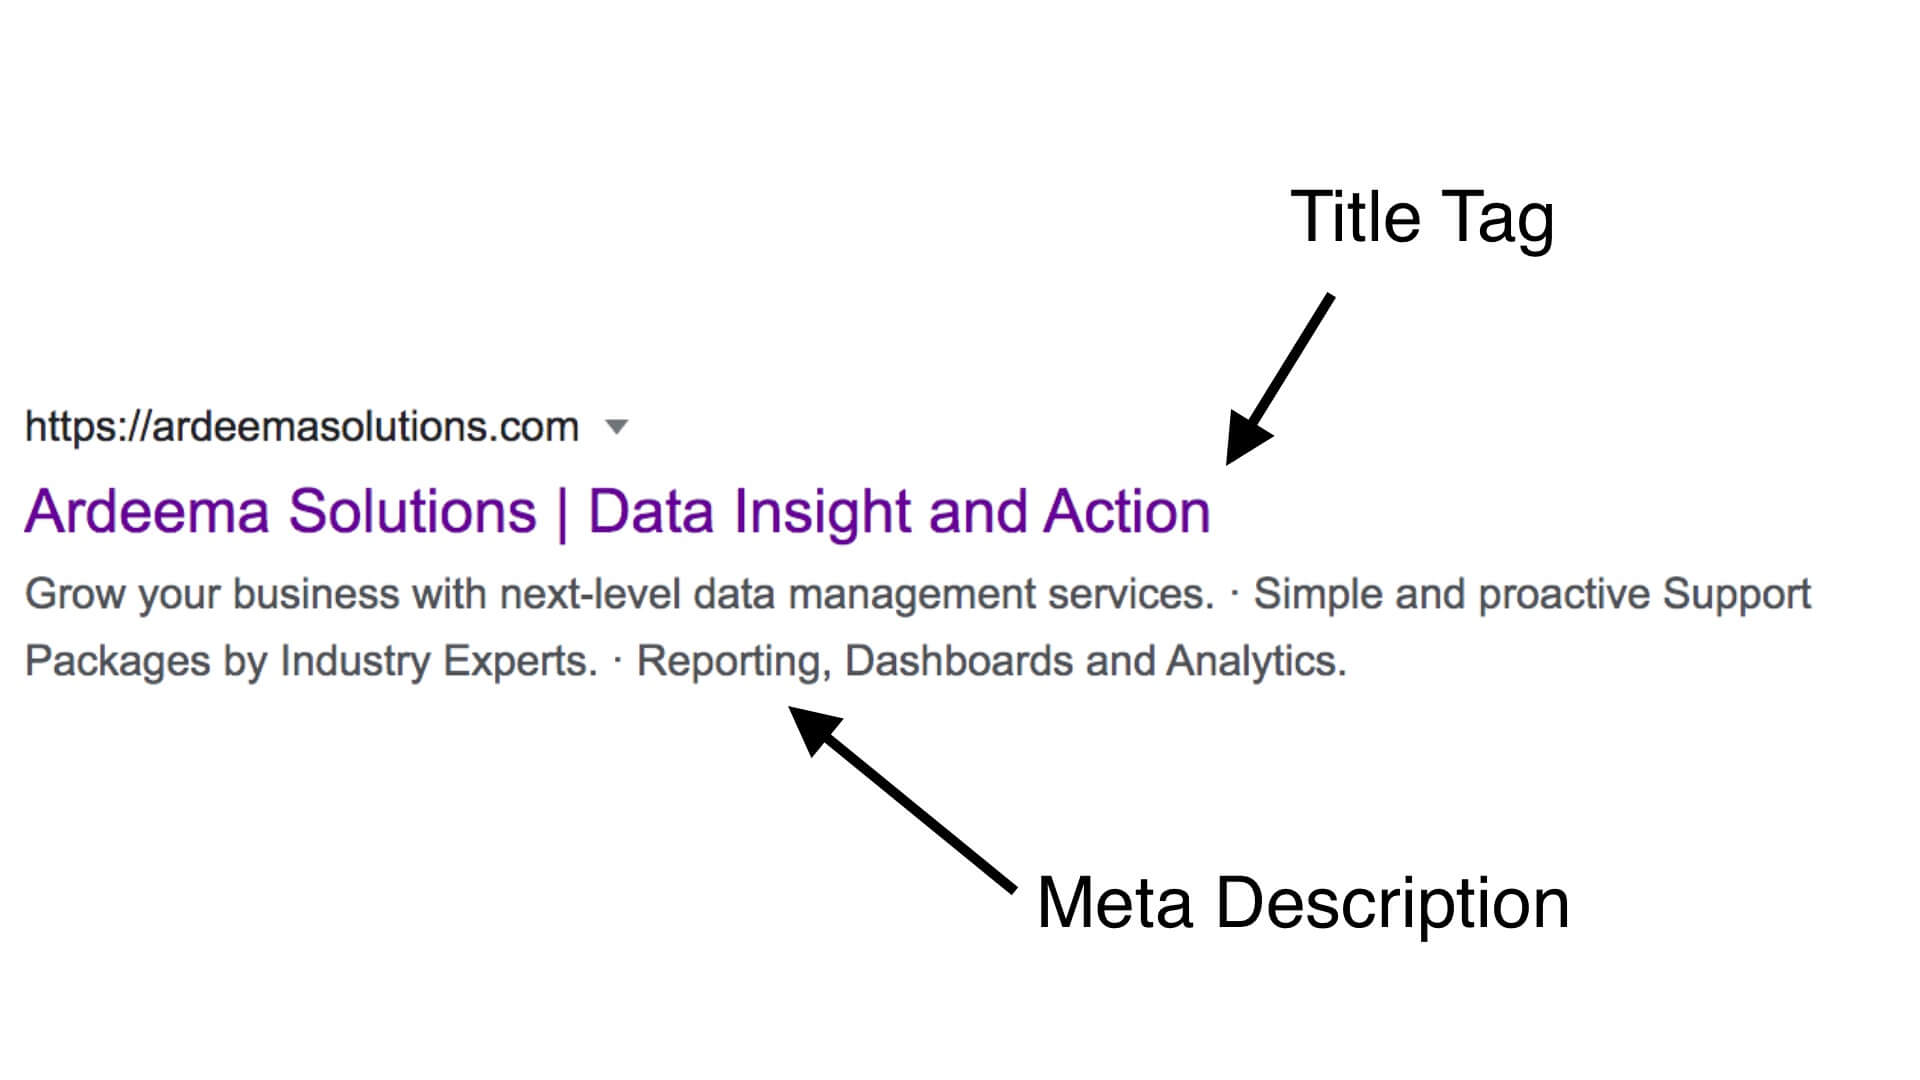 Example of Title Tag and Meta Description for Ardeema Solutions